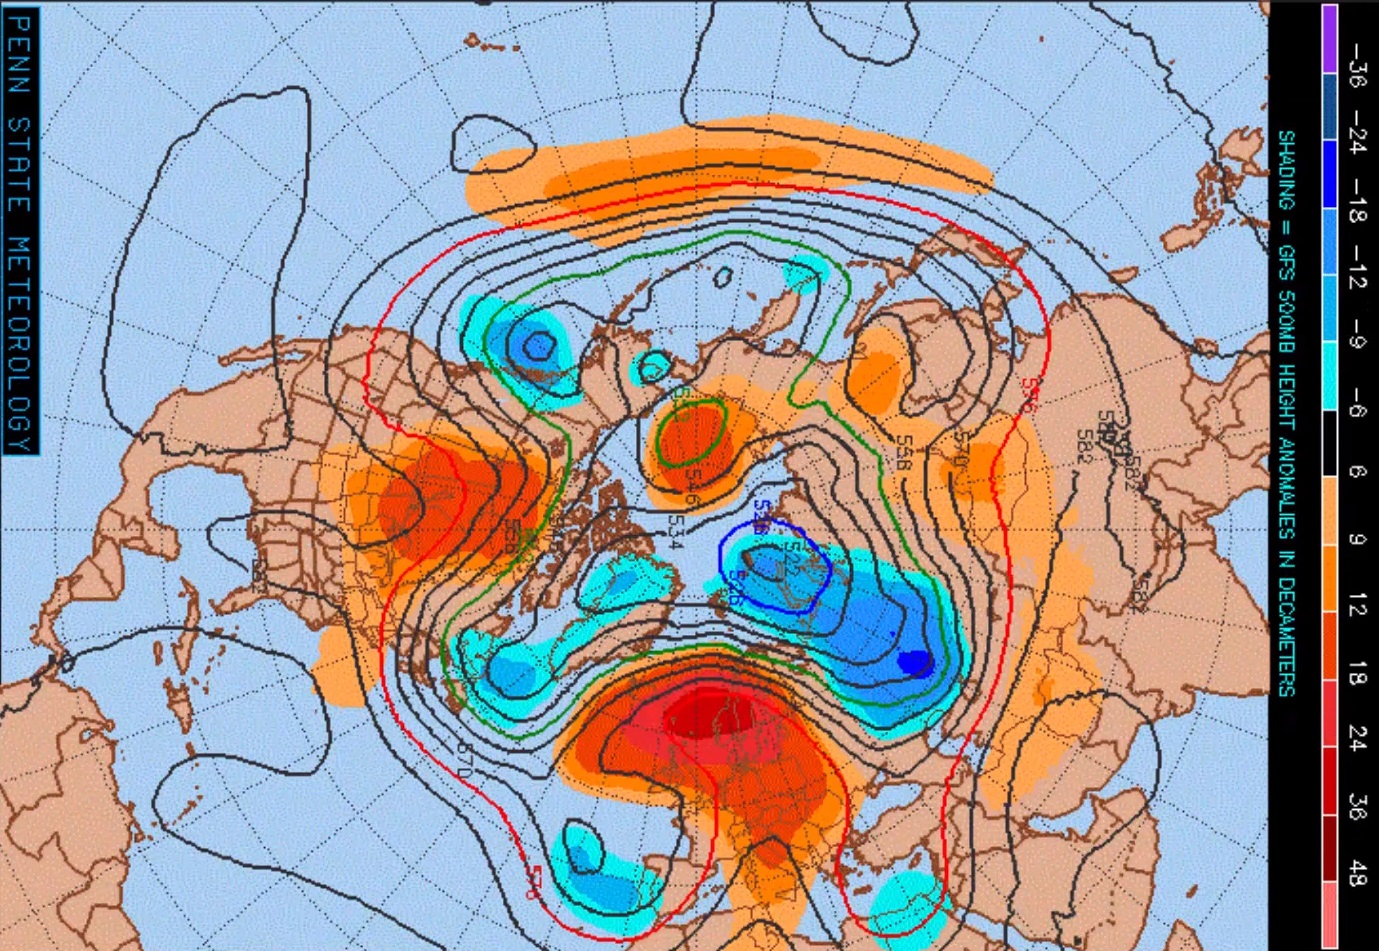 GFS 500mb anomaly chart shown above average heights over the next 10 days